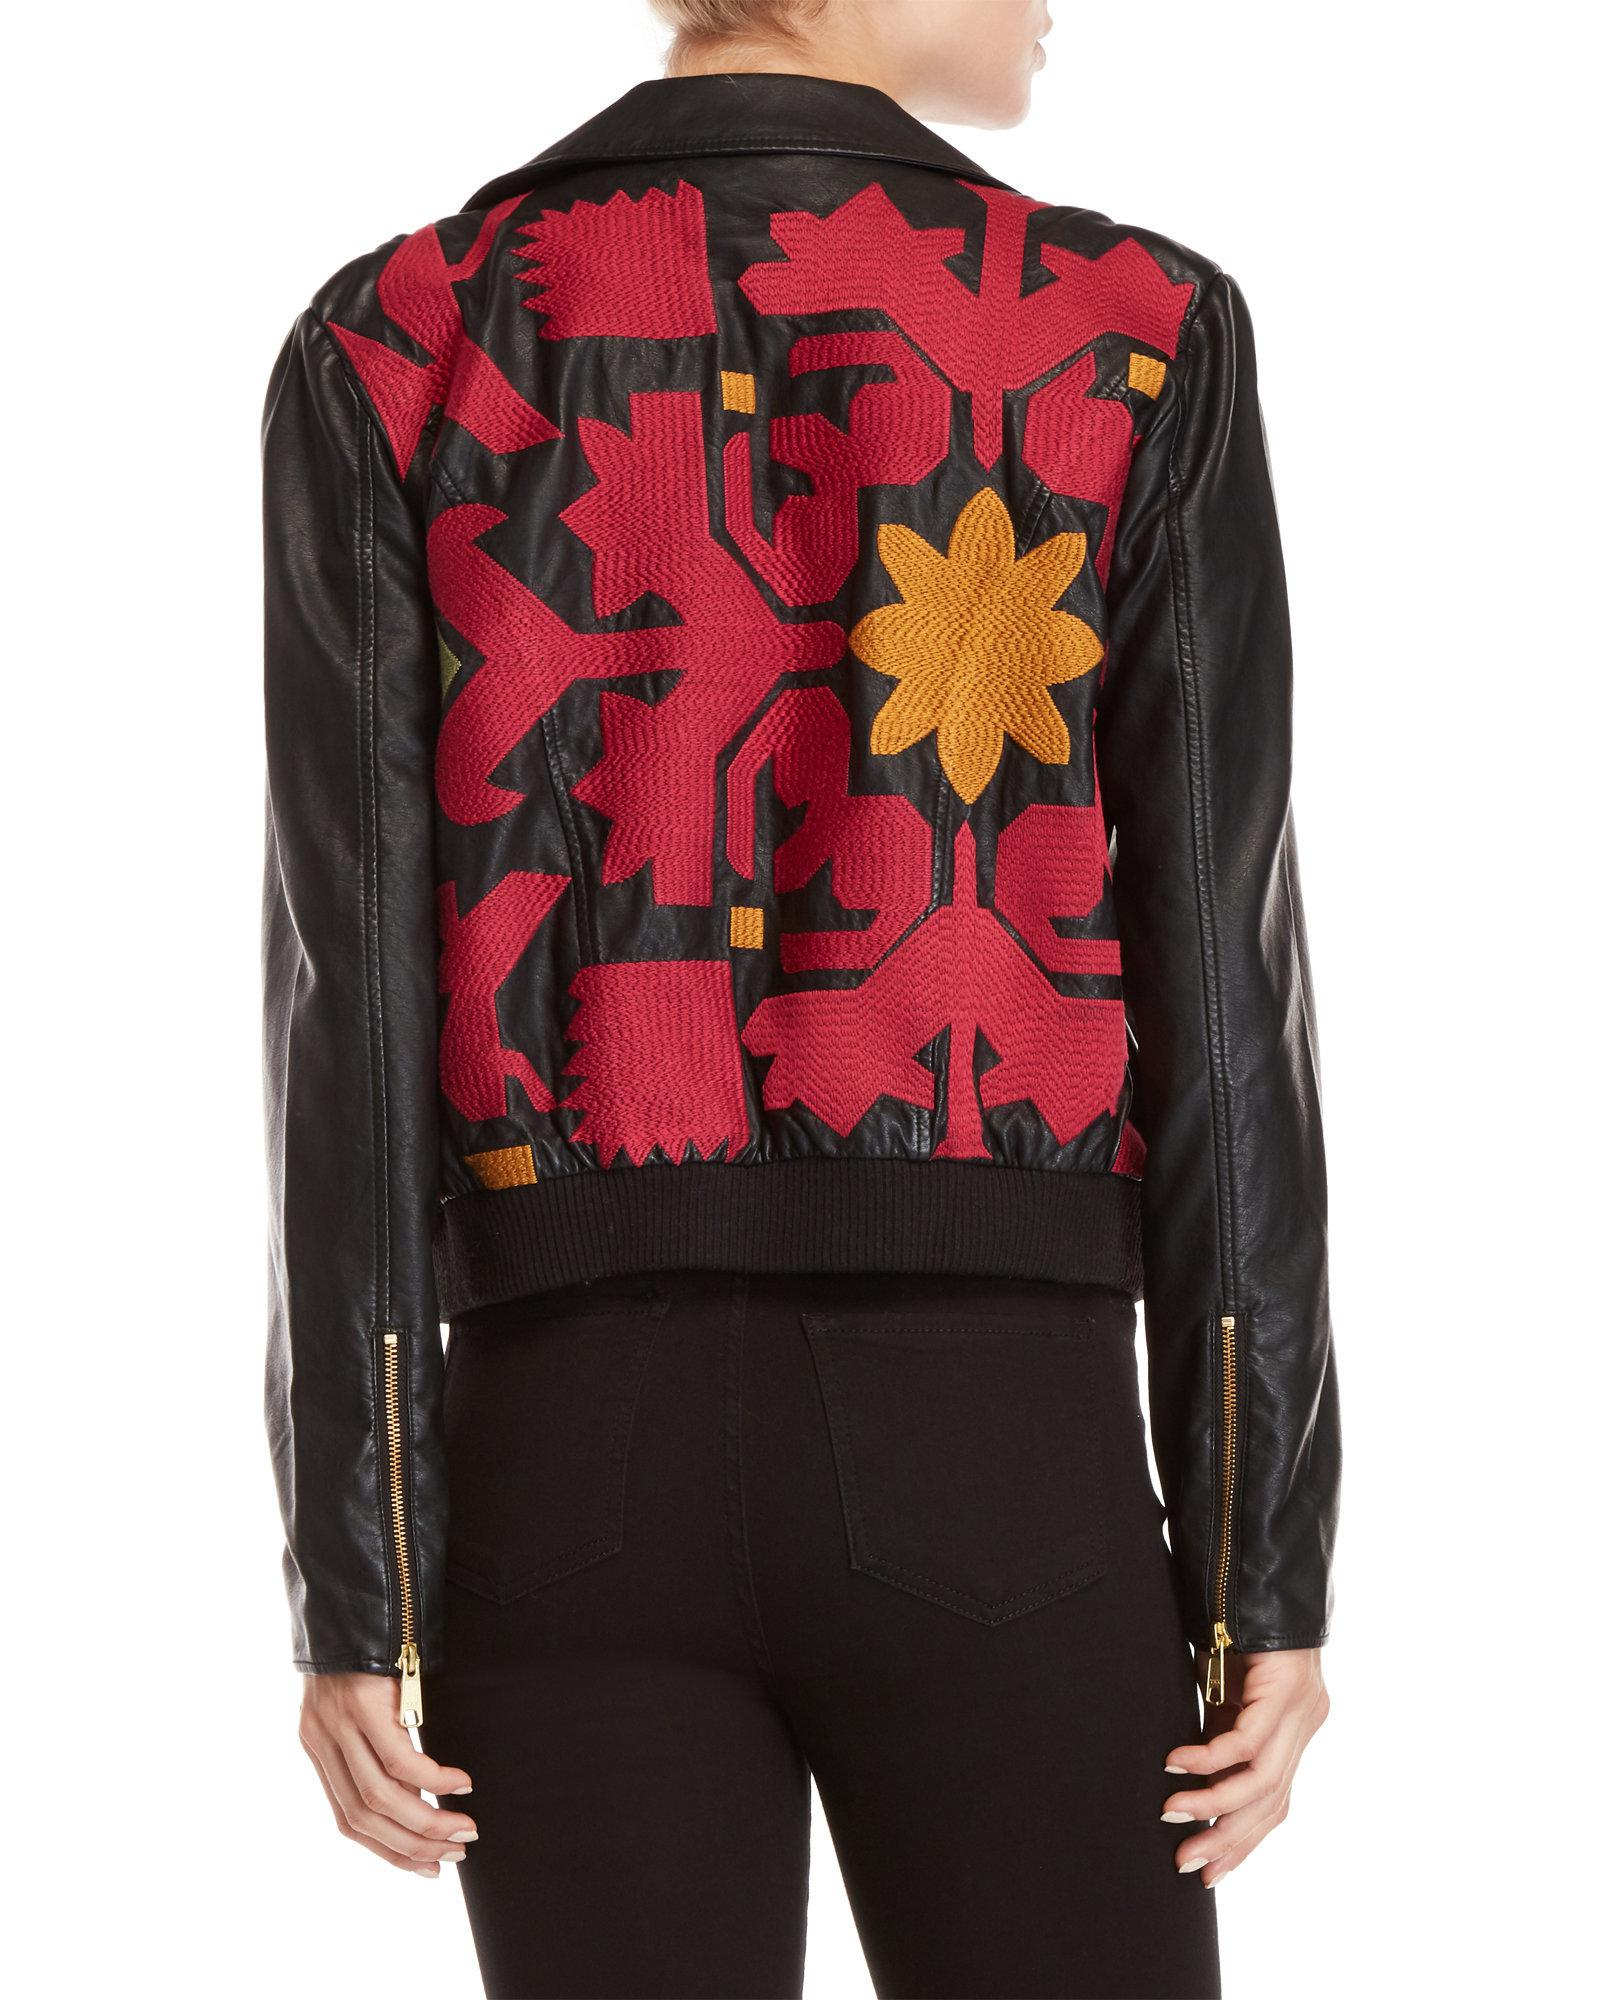 9c8de3a74 Lyst - Free People Embroidered Vegan Bomber Jacket in Black